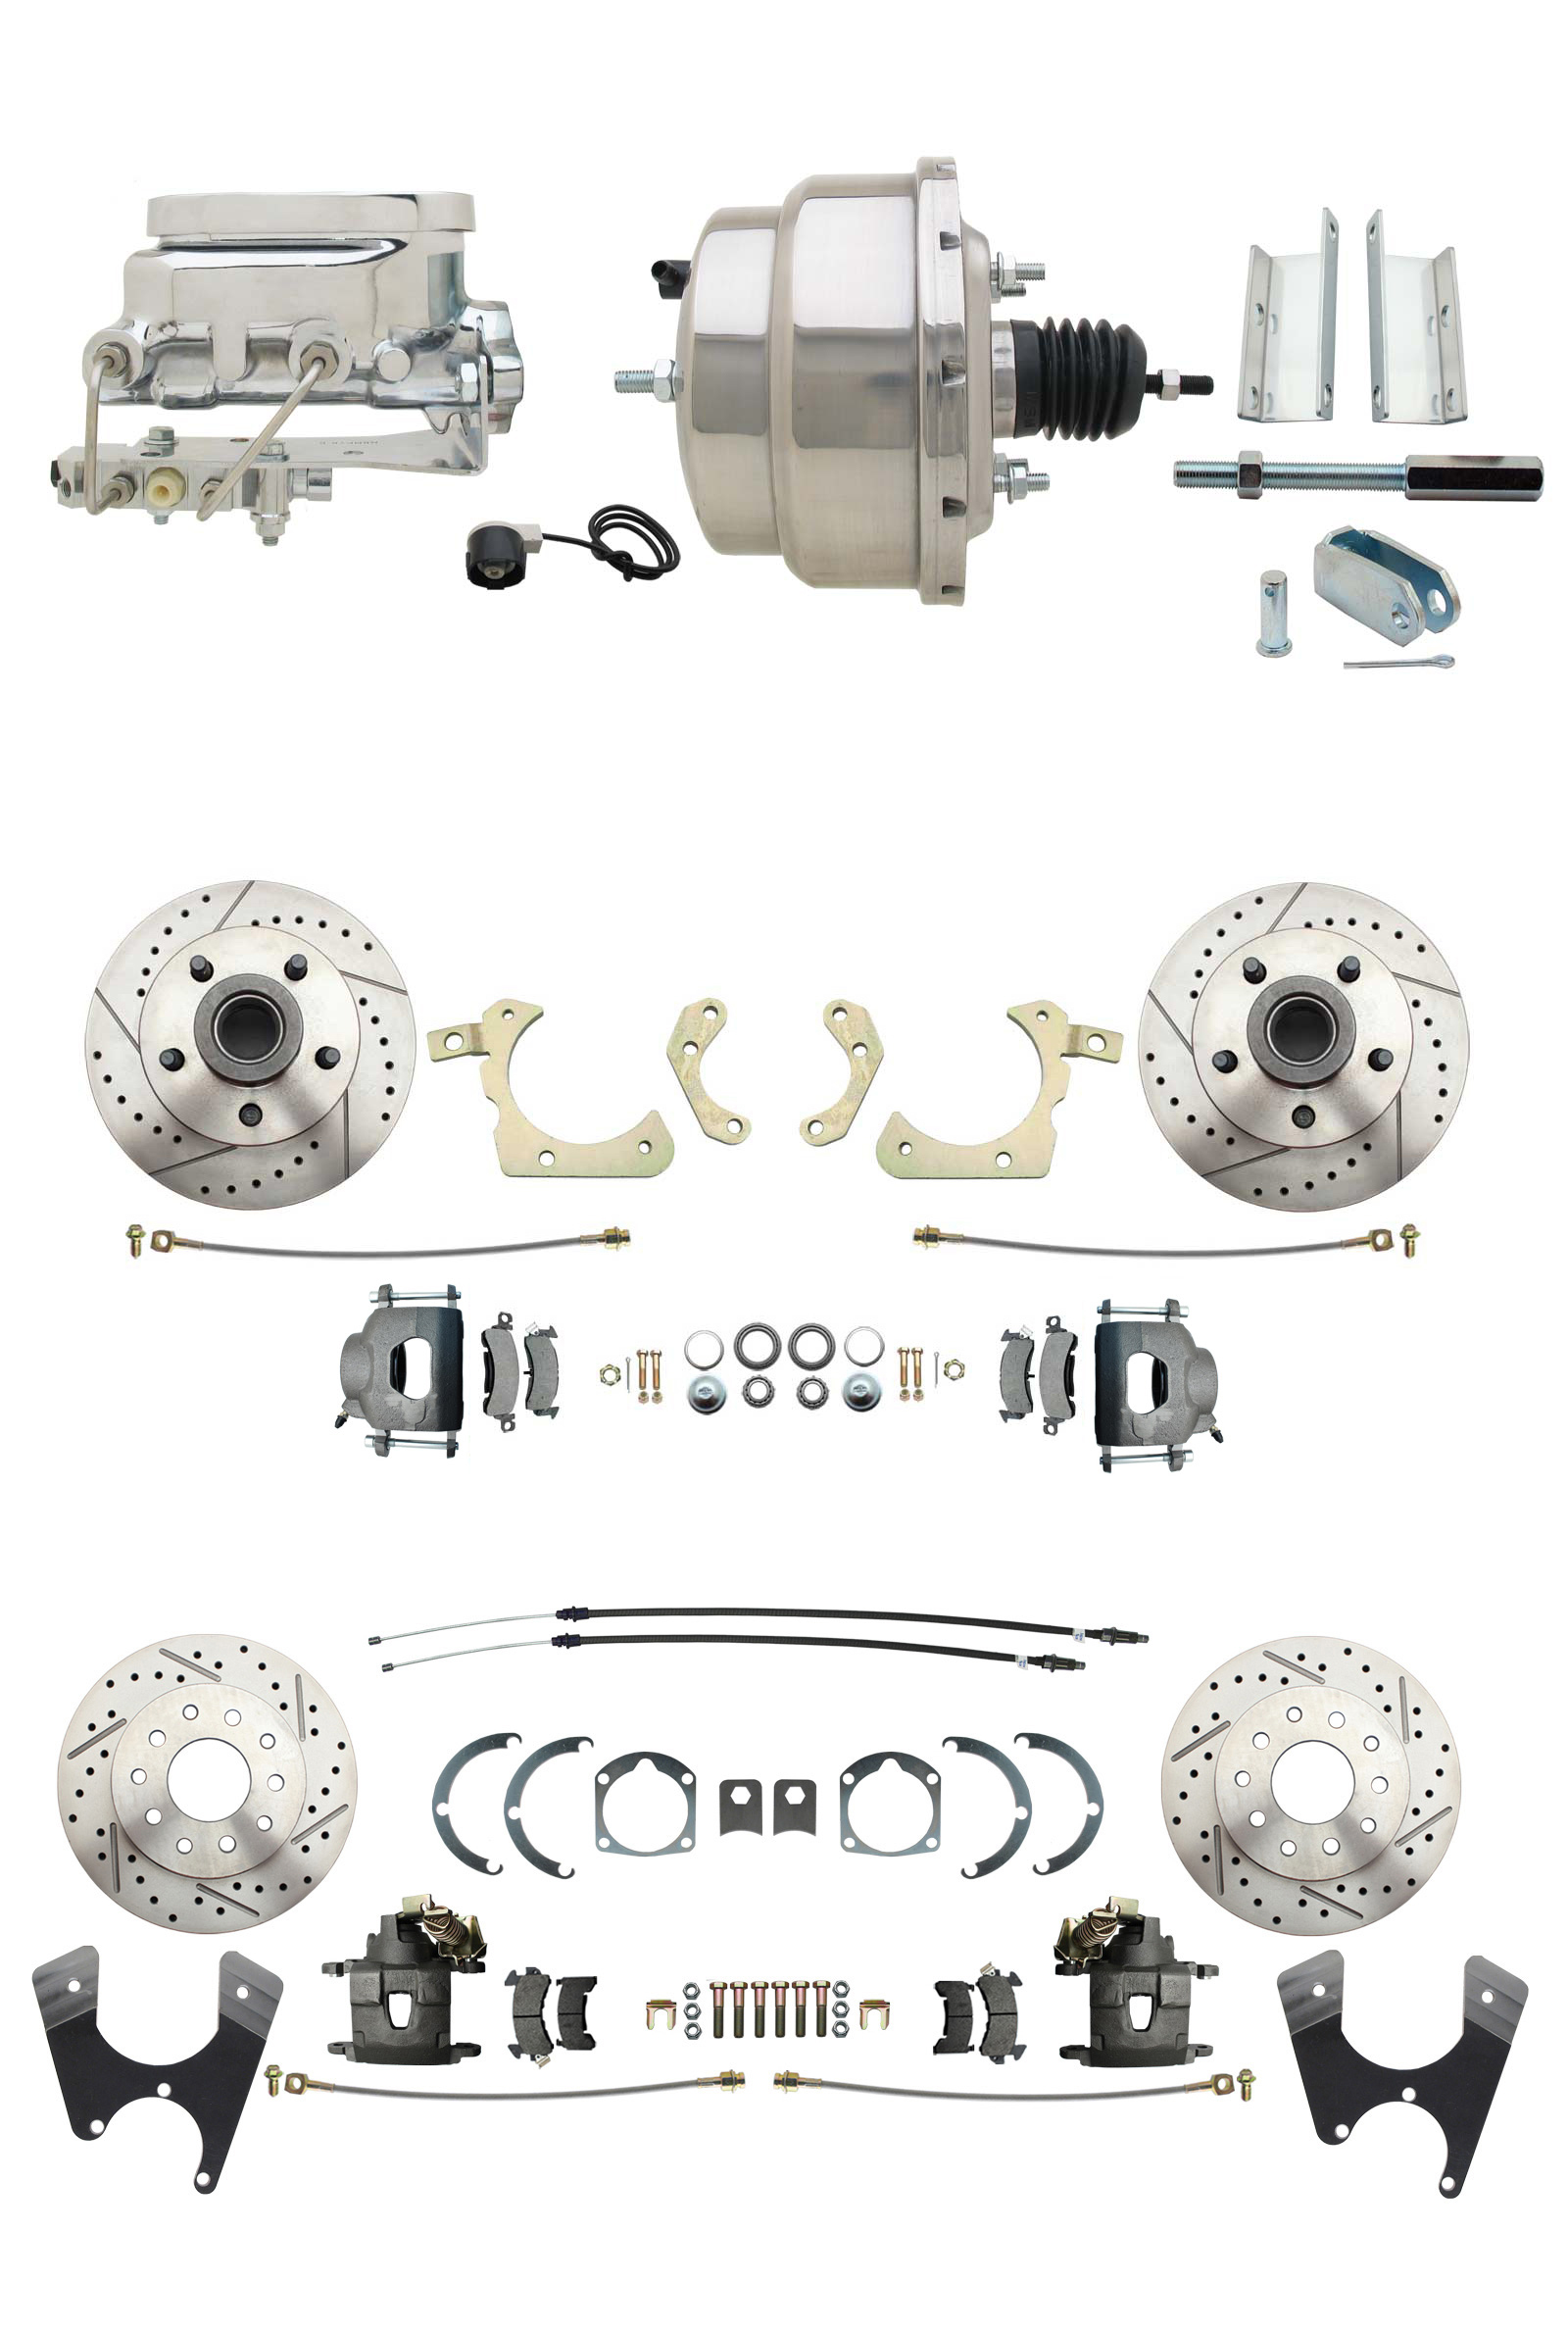 1955-1958 GM Full Size Disc Brake Kit Drilled/Slotted Rotors (Impala, Bel Air, Biscayne) & 8 Dual Chrome Booster Conversion Kit W/ Flat Top Chrome Master Cylinder Bottom Mount Disc/ Disc Proportioning Valve Kit